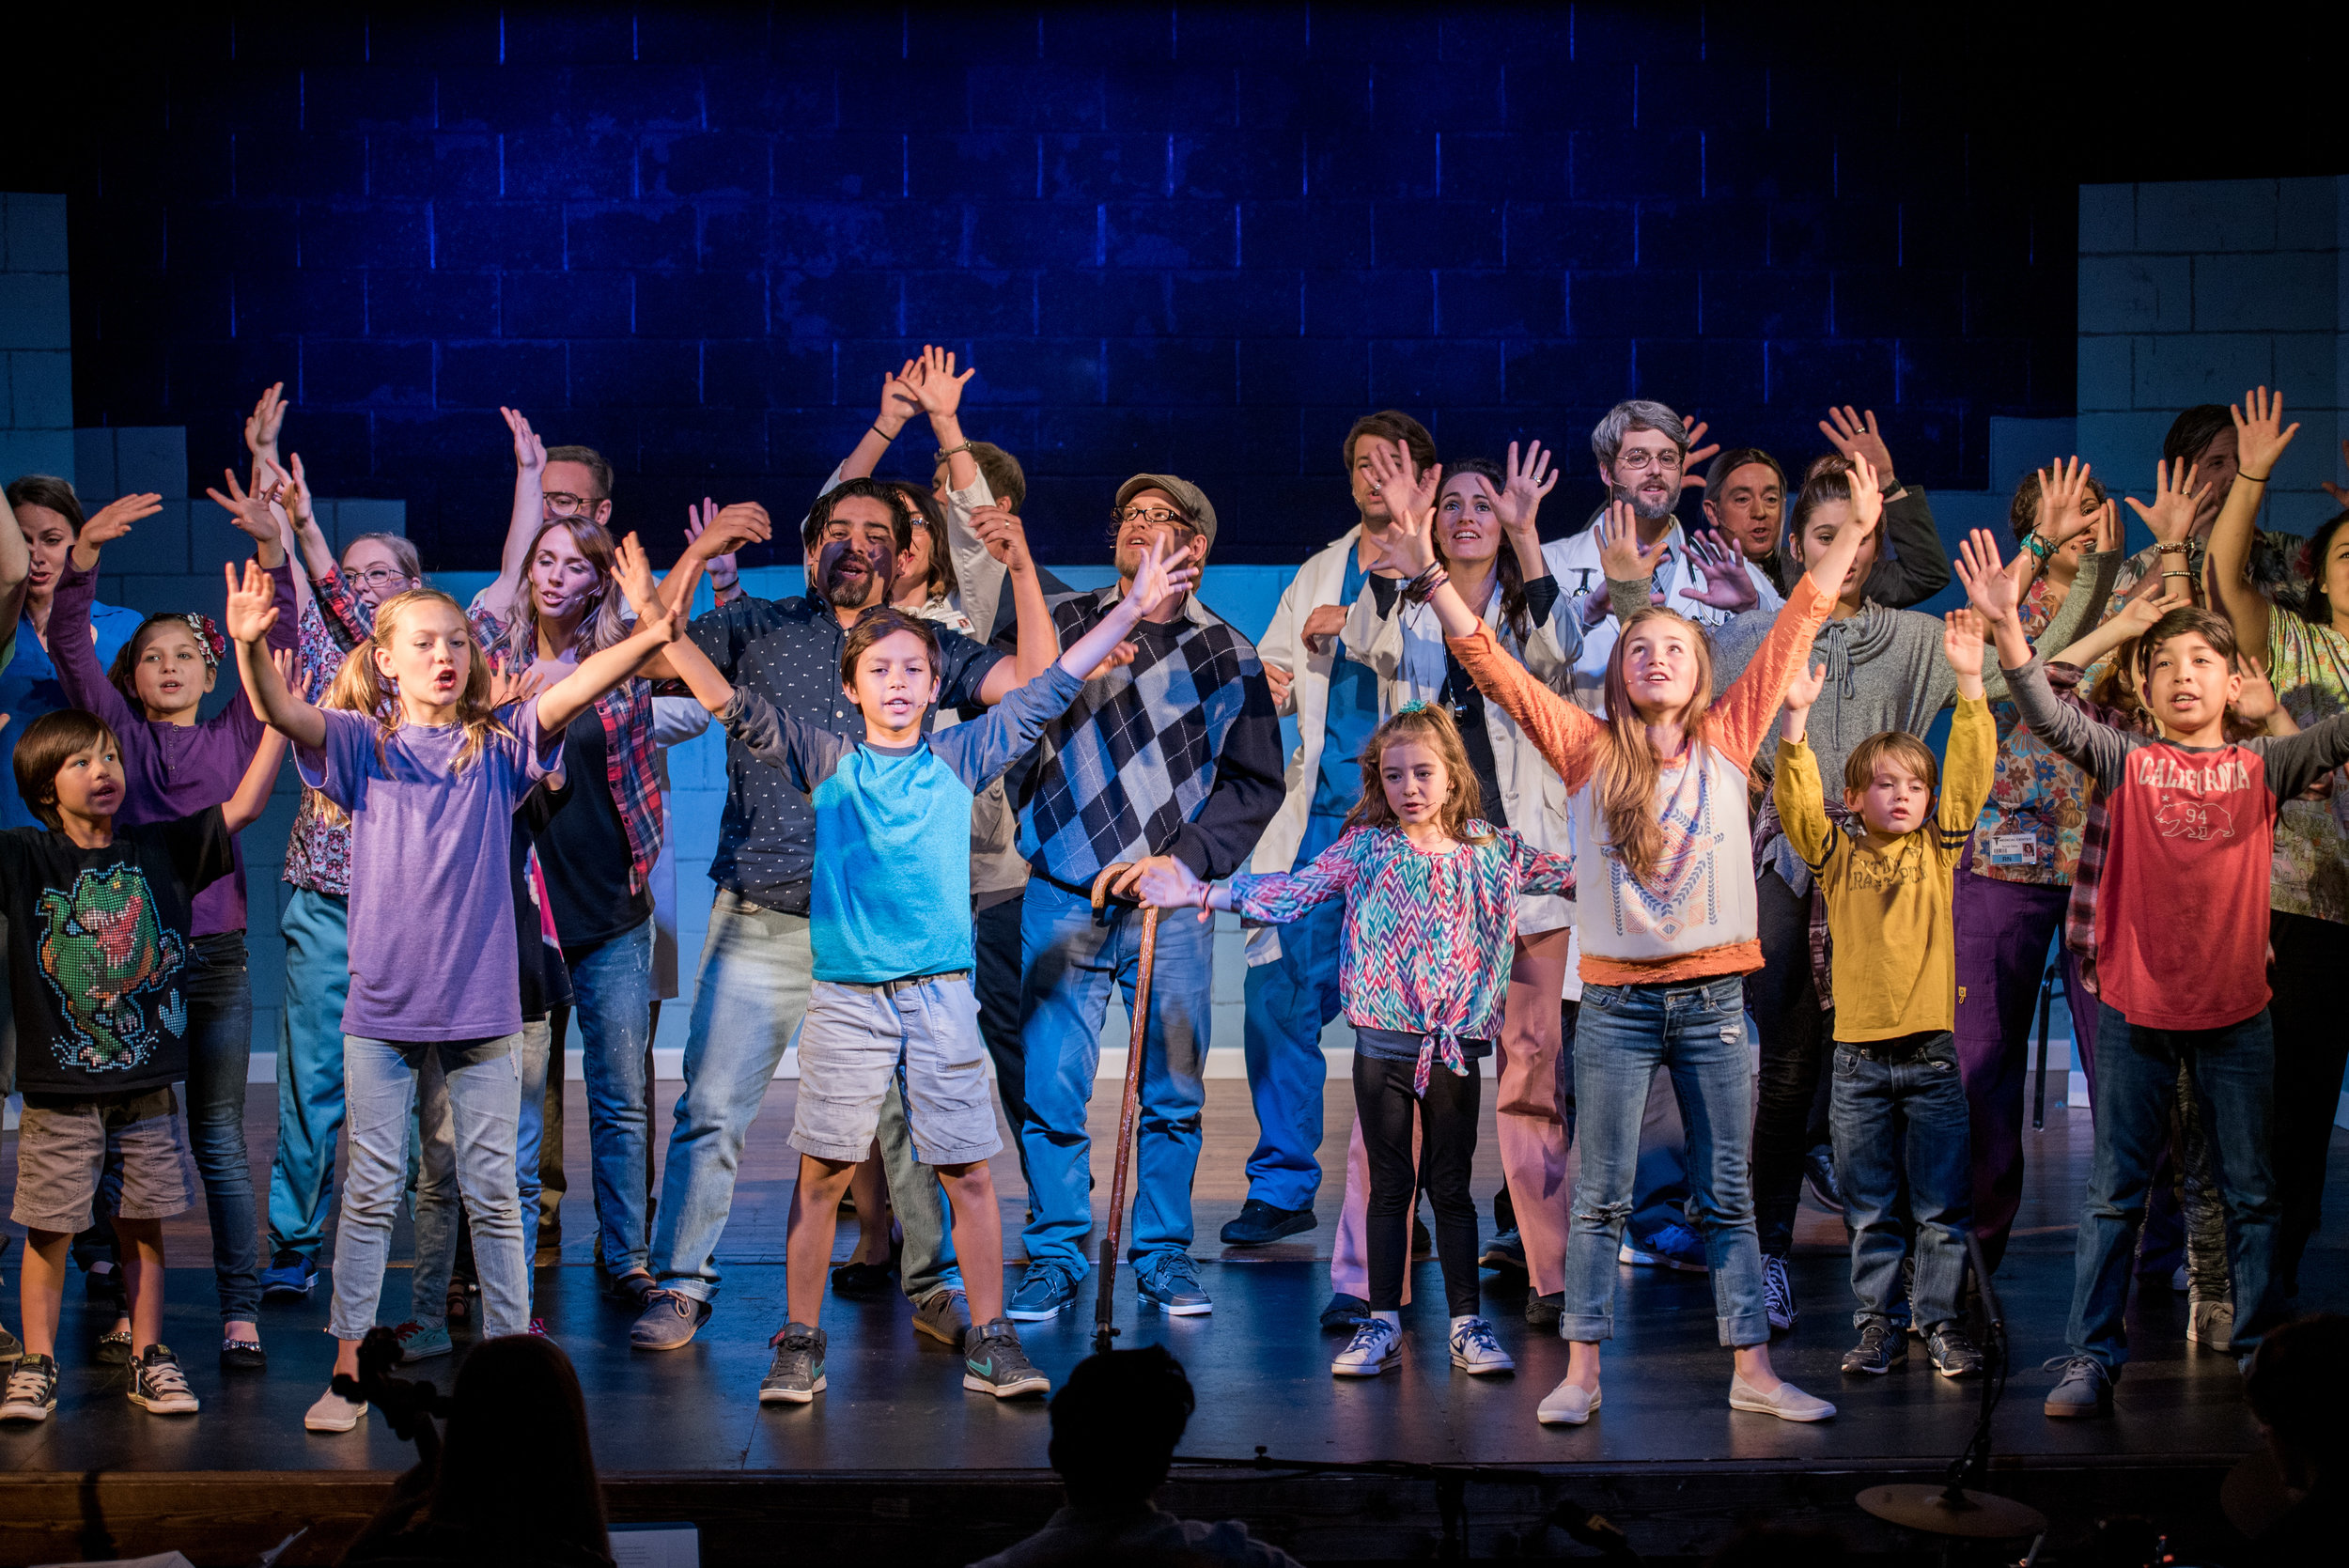 BREATHE, A New Musical celebrates the possibility for life and joy even amidst trials and suffering. The story gives voice to the stories of many who deal with very difficult situations.